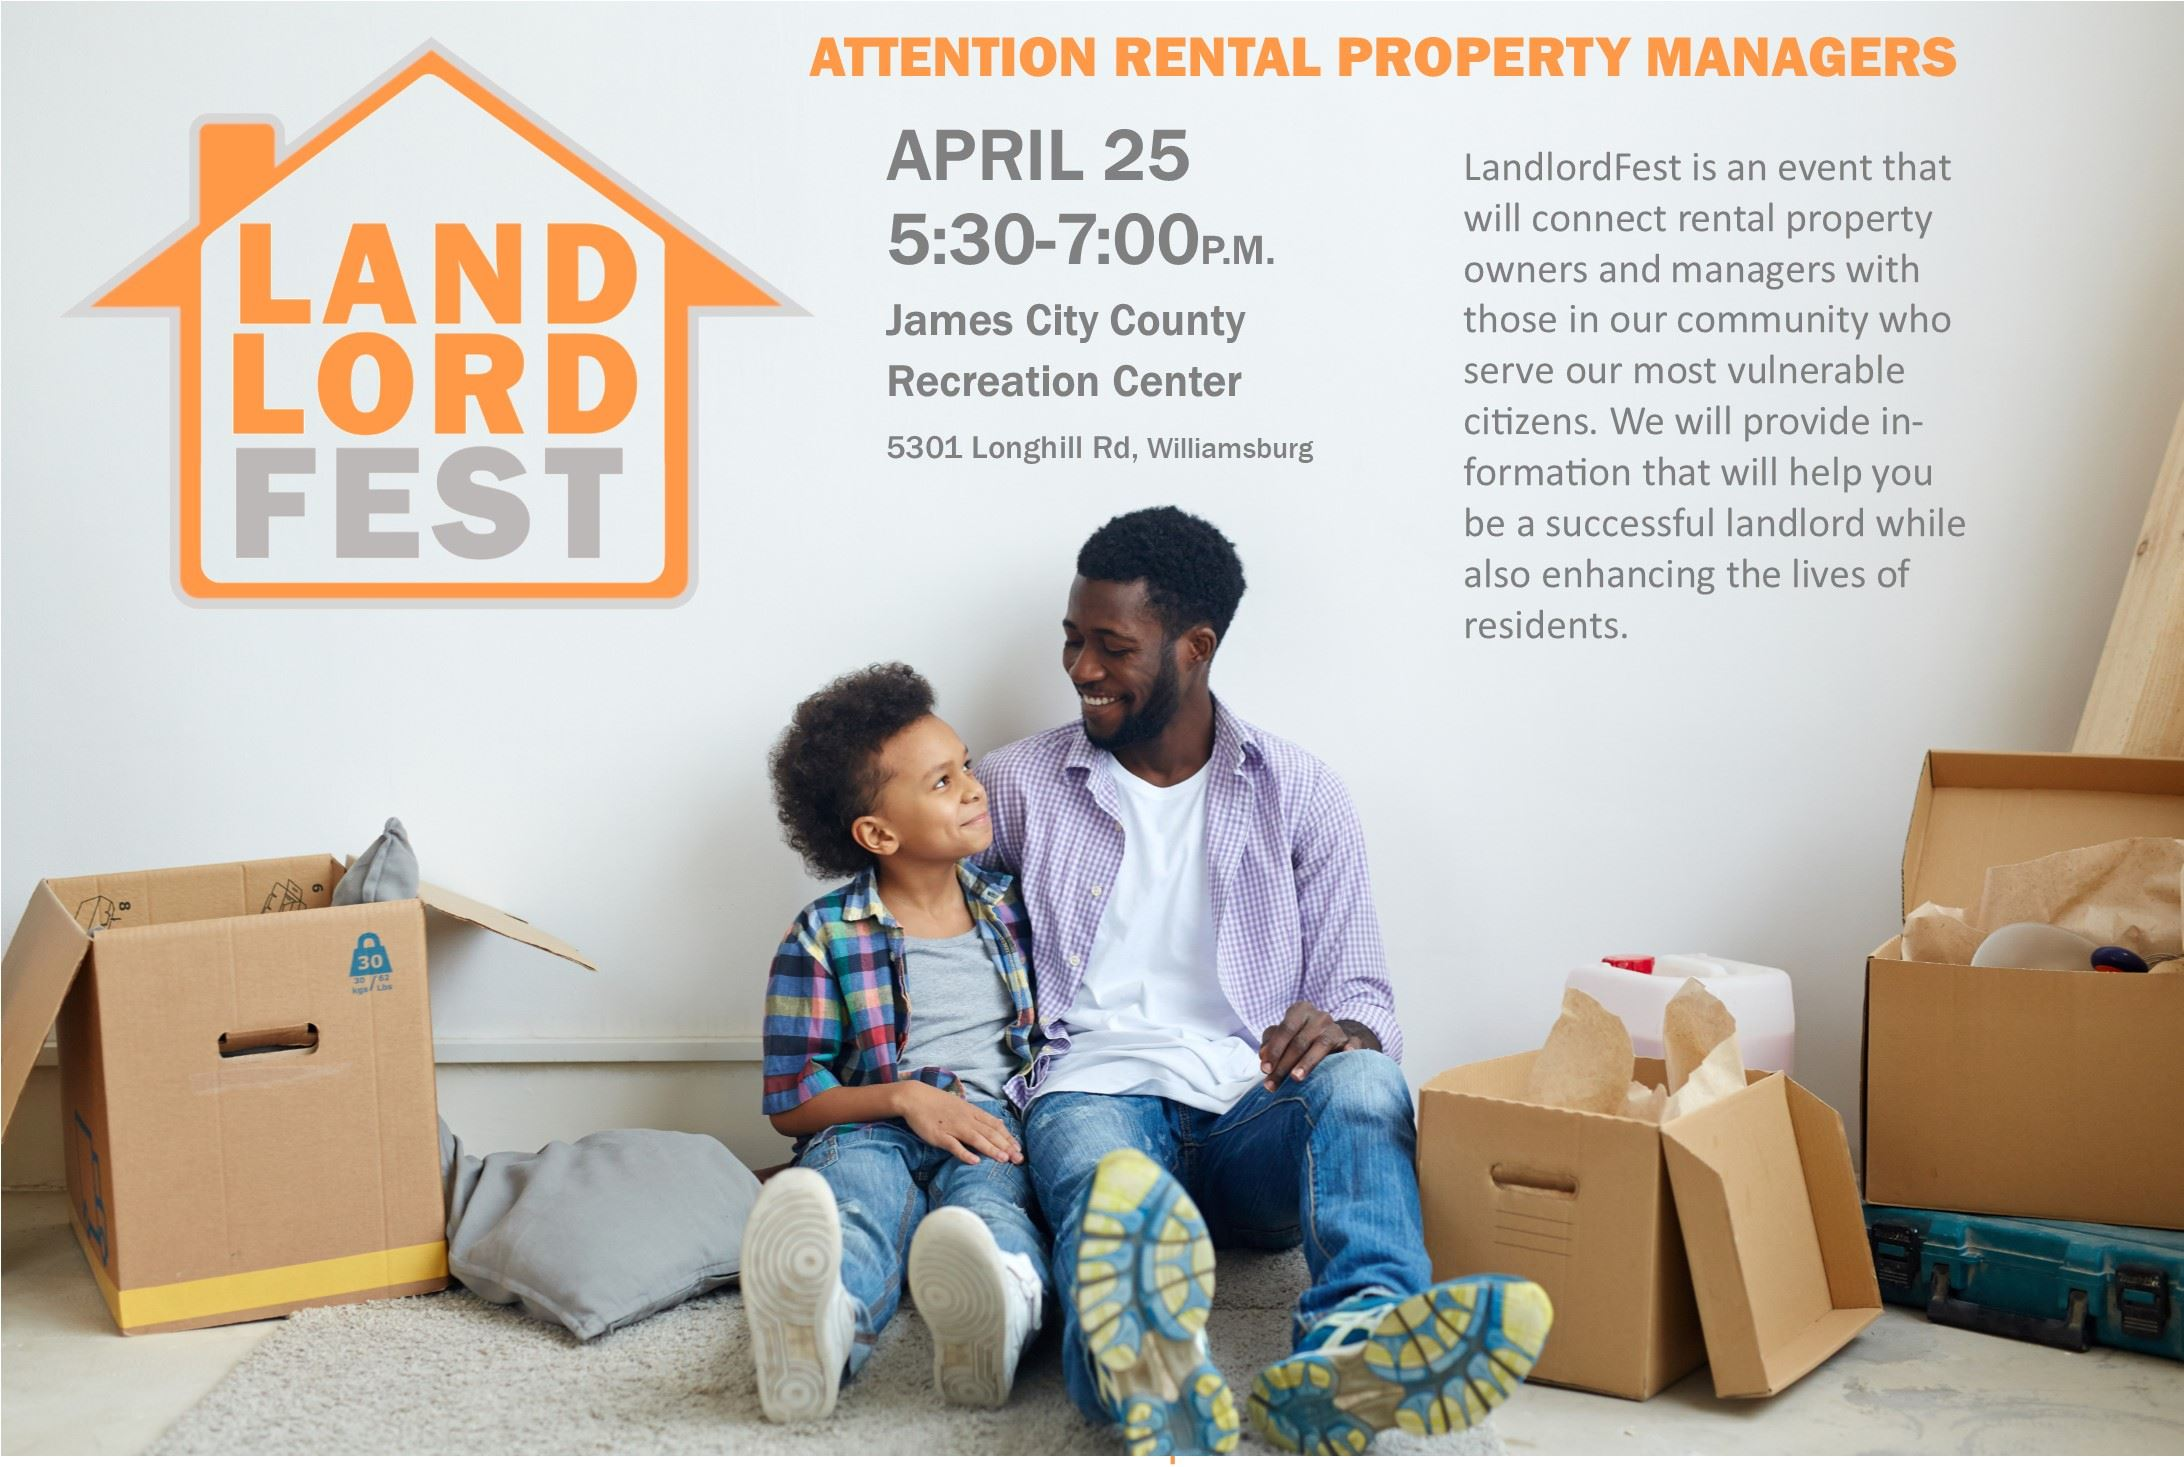 LandlordFest April 25, 2019, 5:30 to 7:00 at the James City County Recreation Center